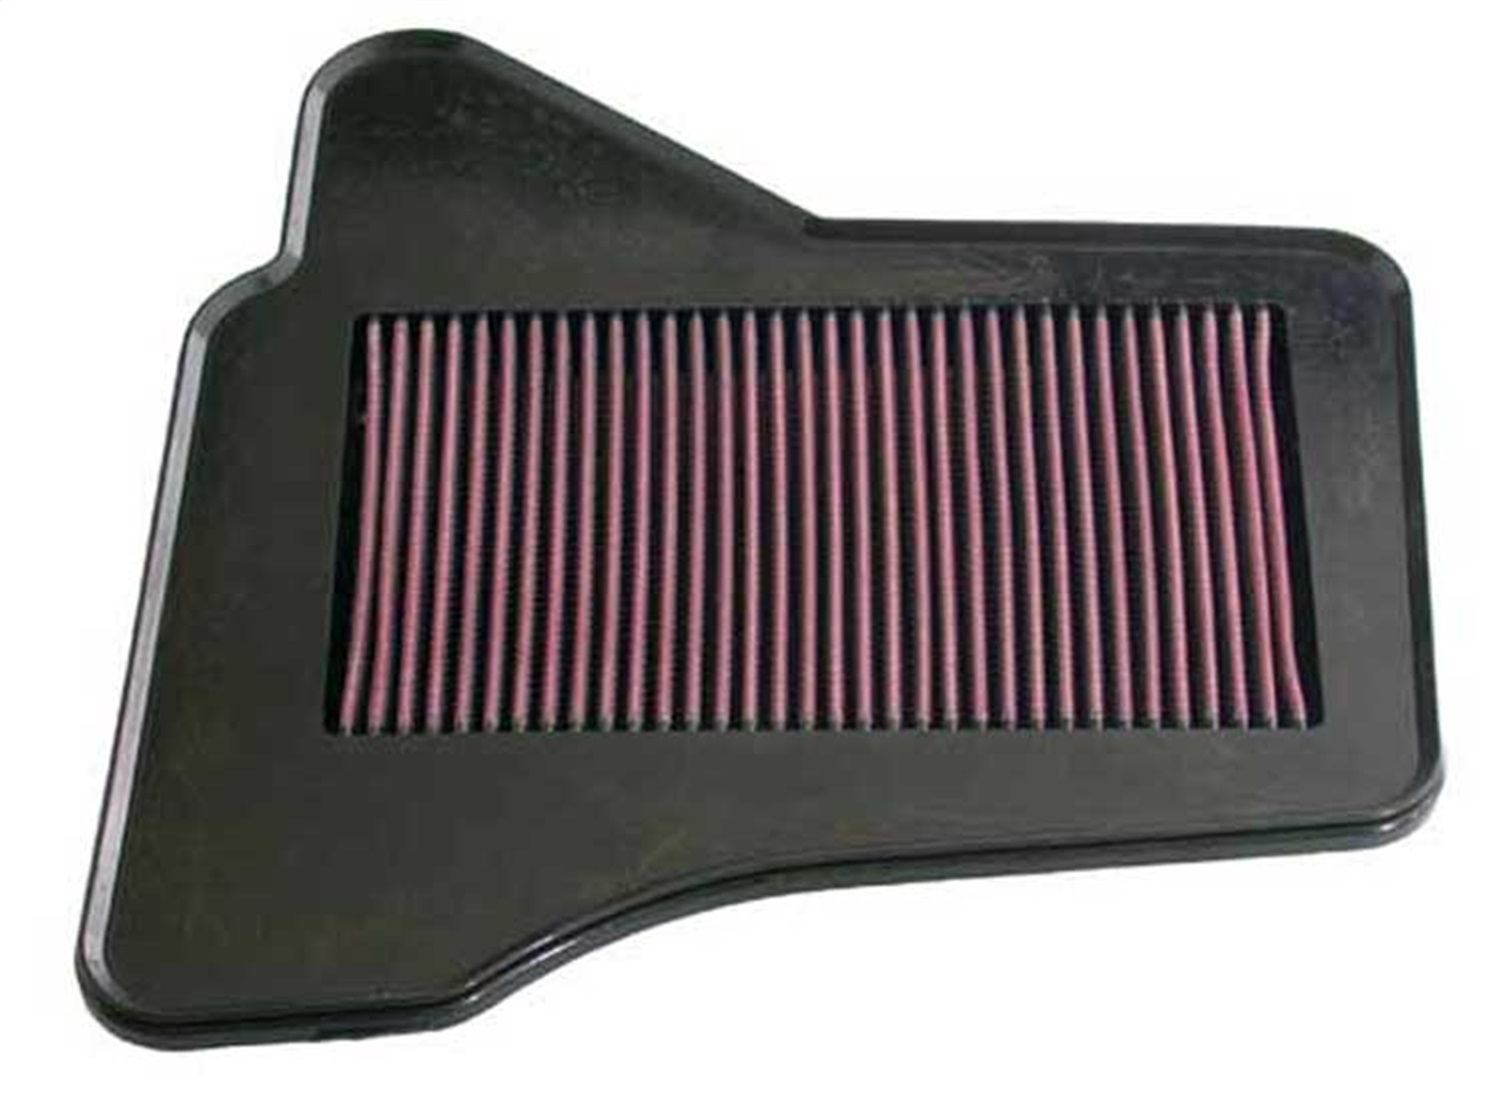 K&N Filters 33-2283 Air Filter Fits 04-08 Pacifica 33-2283